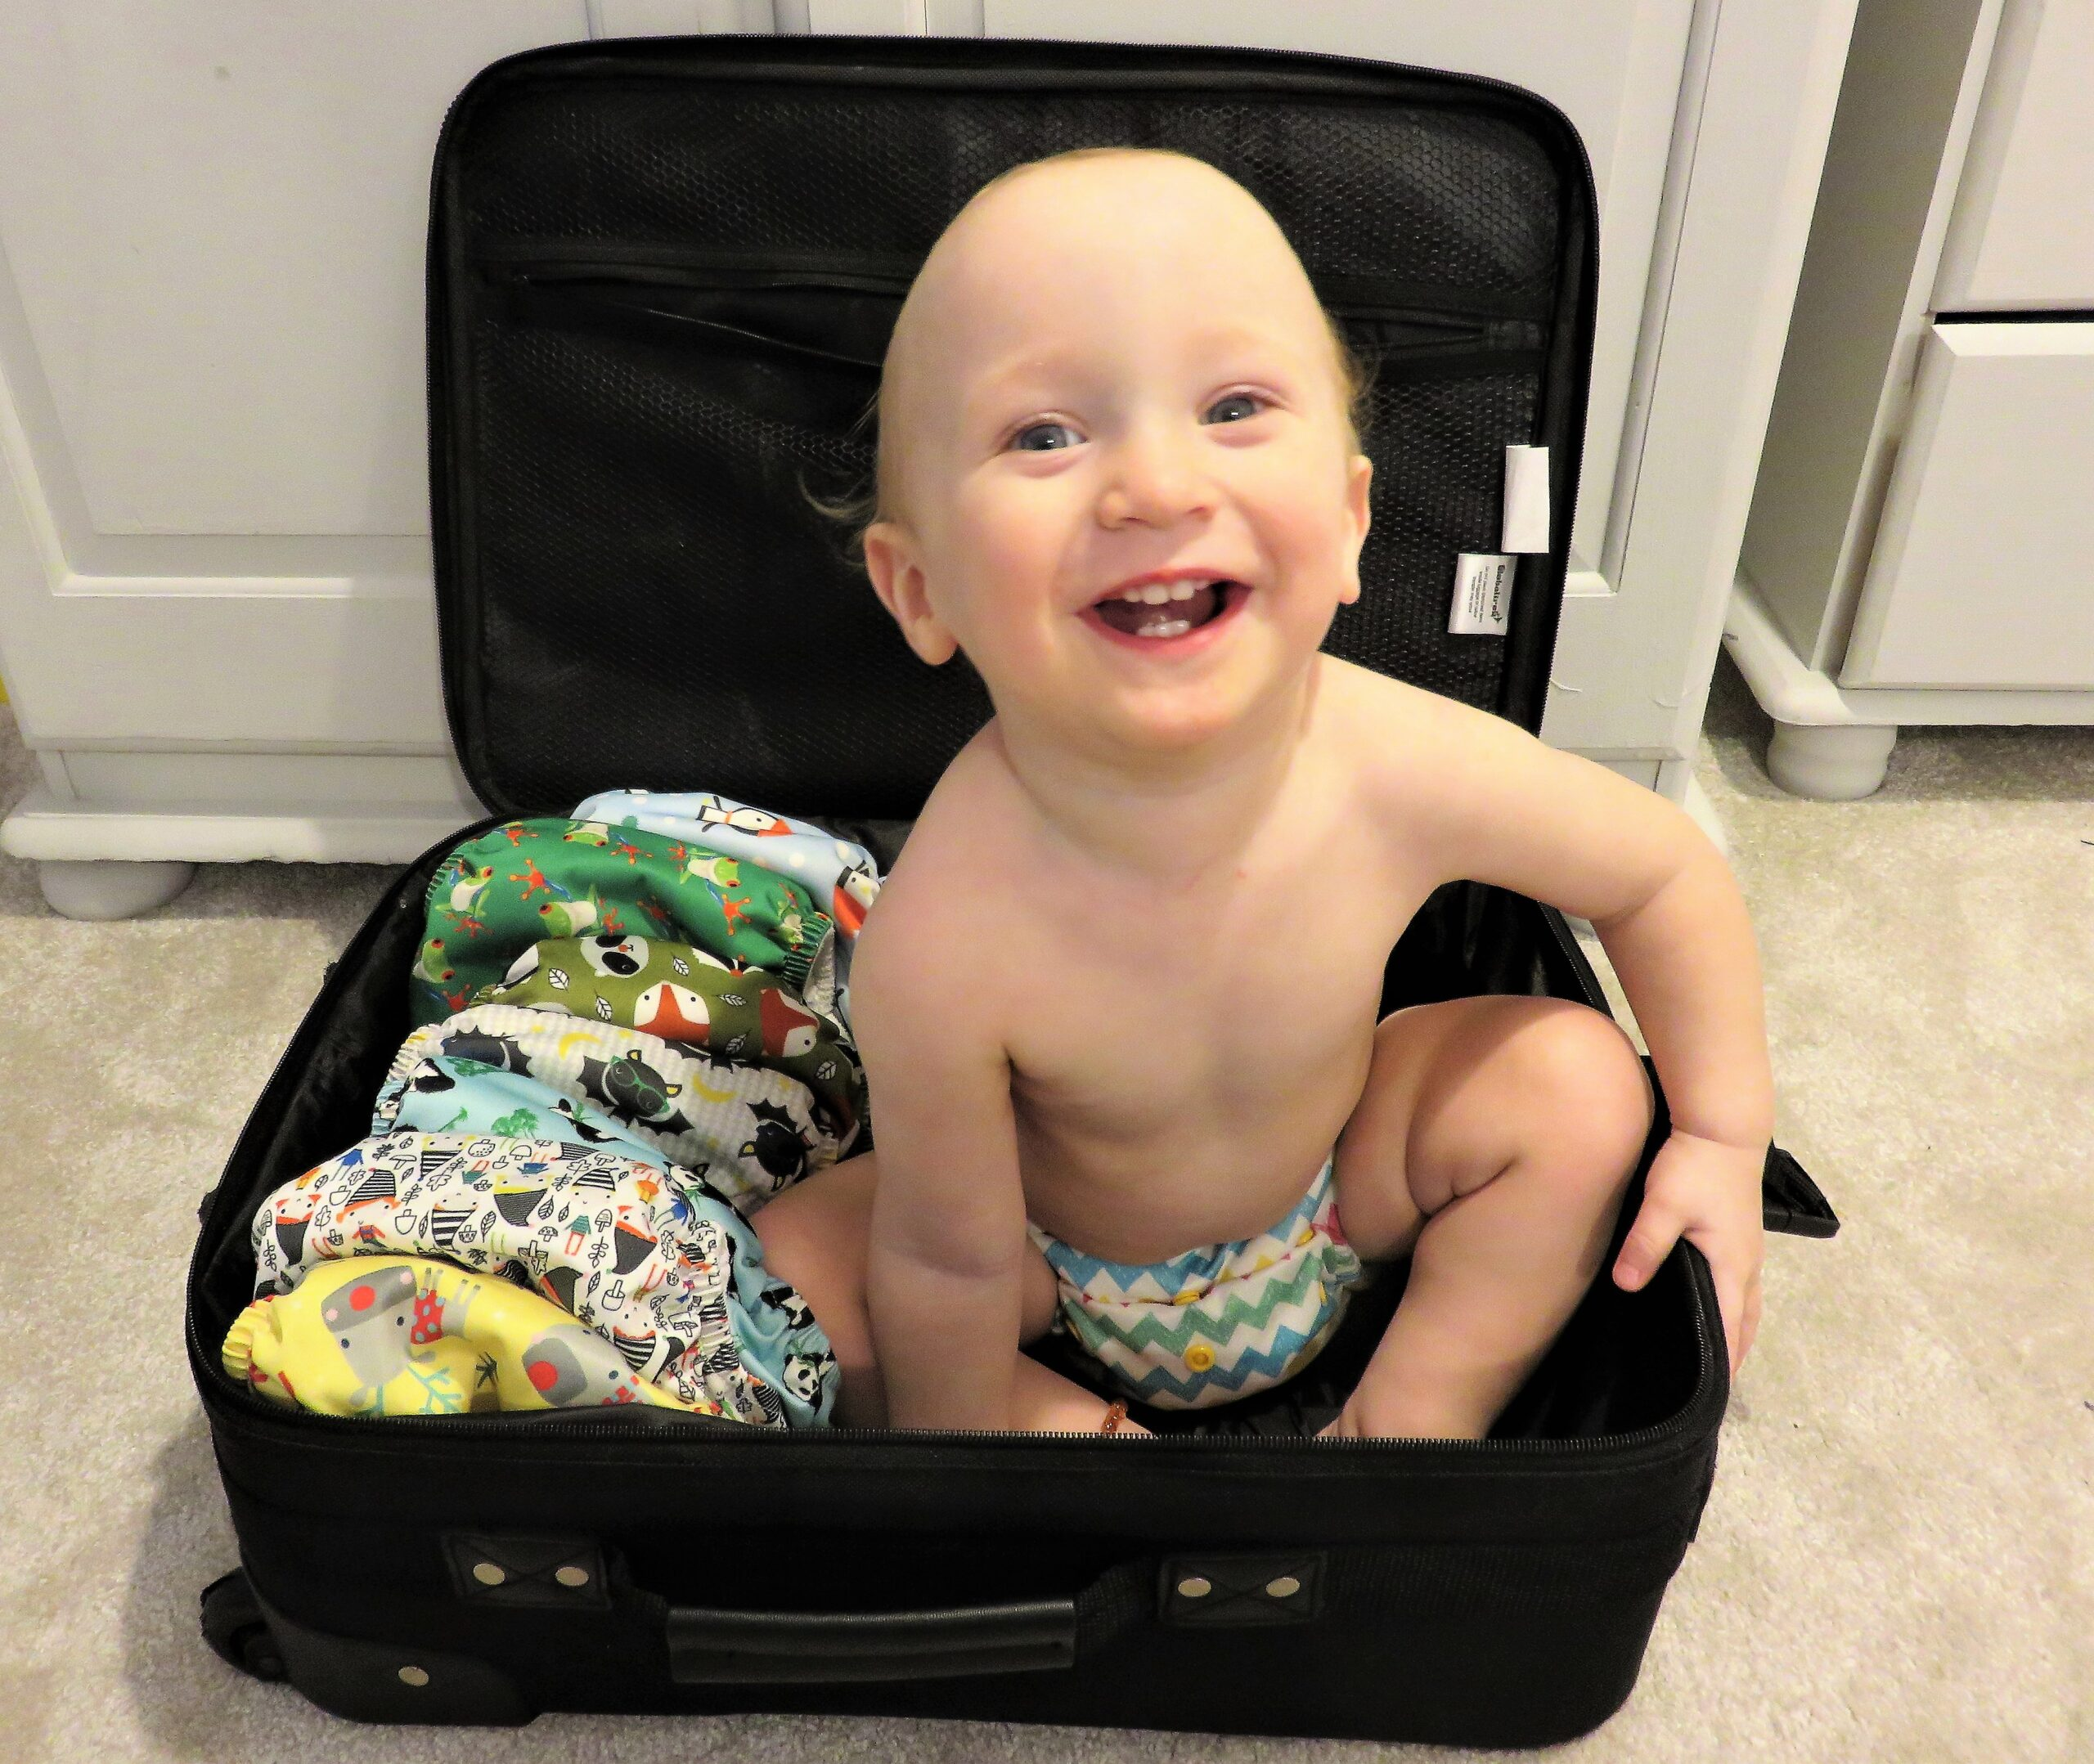 baby sat in a suitcase with reusable nappies